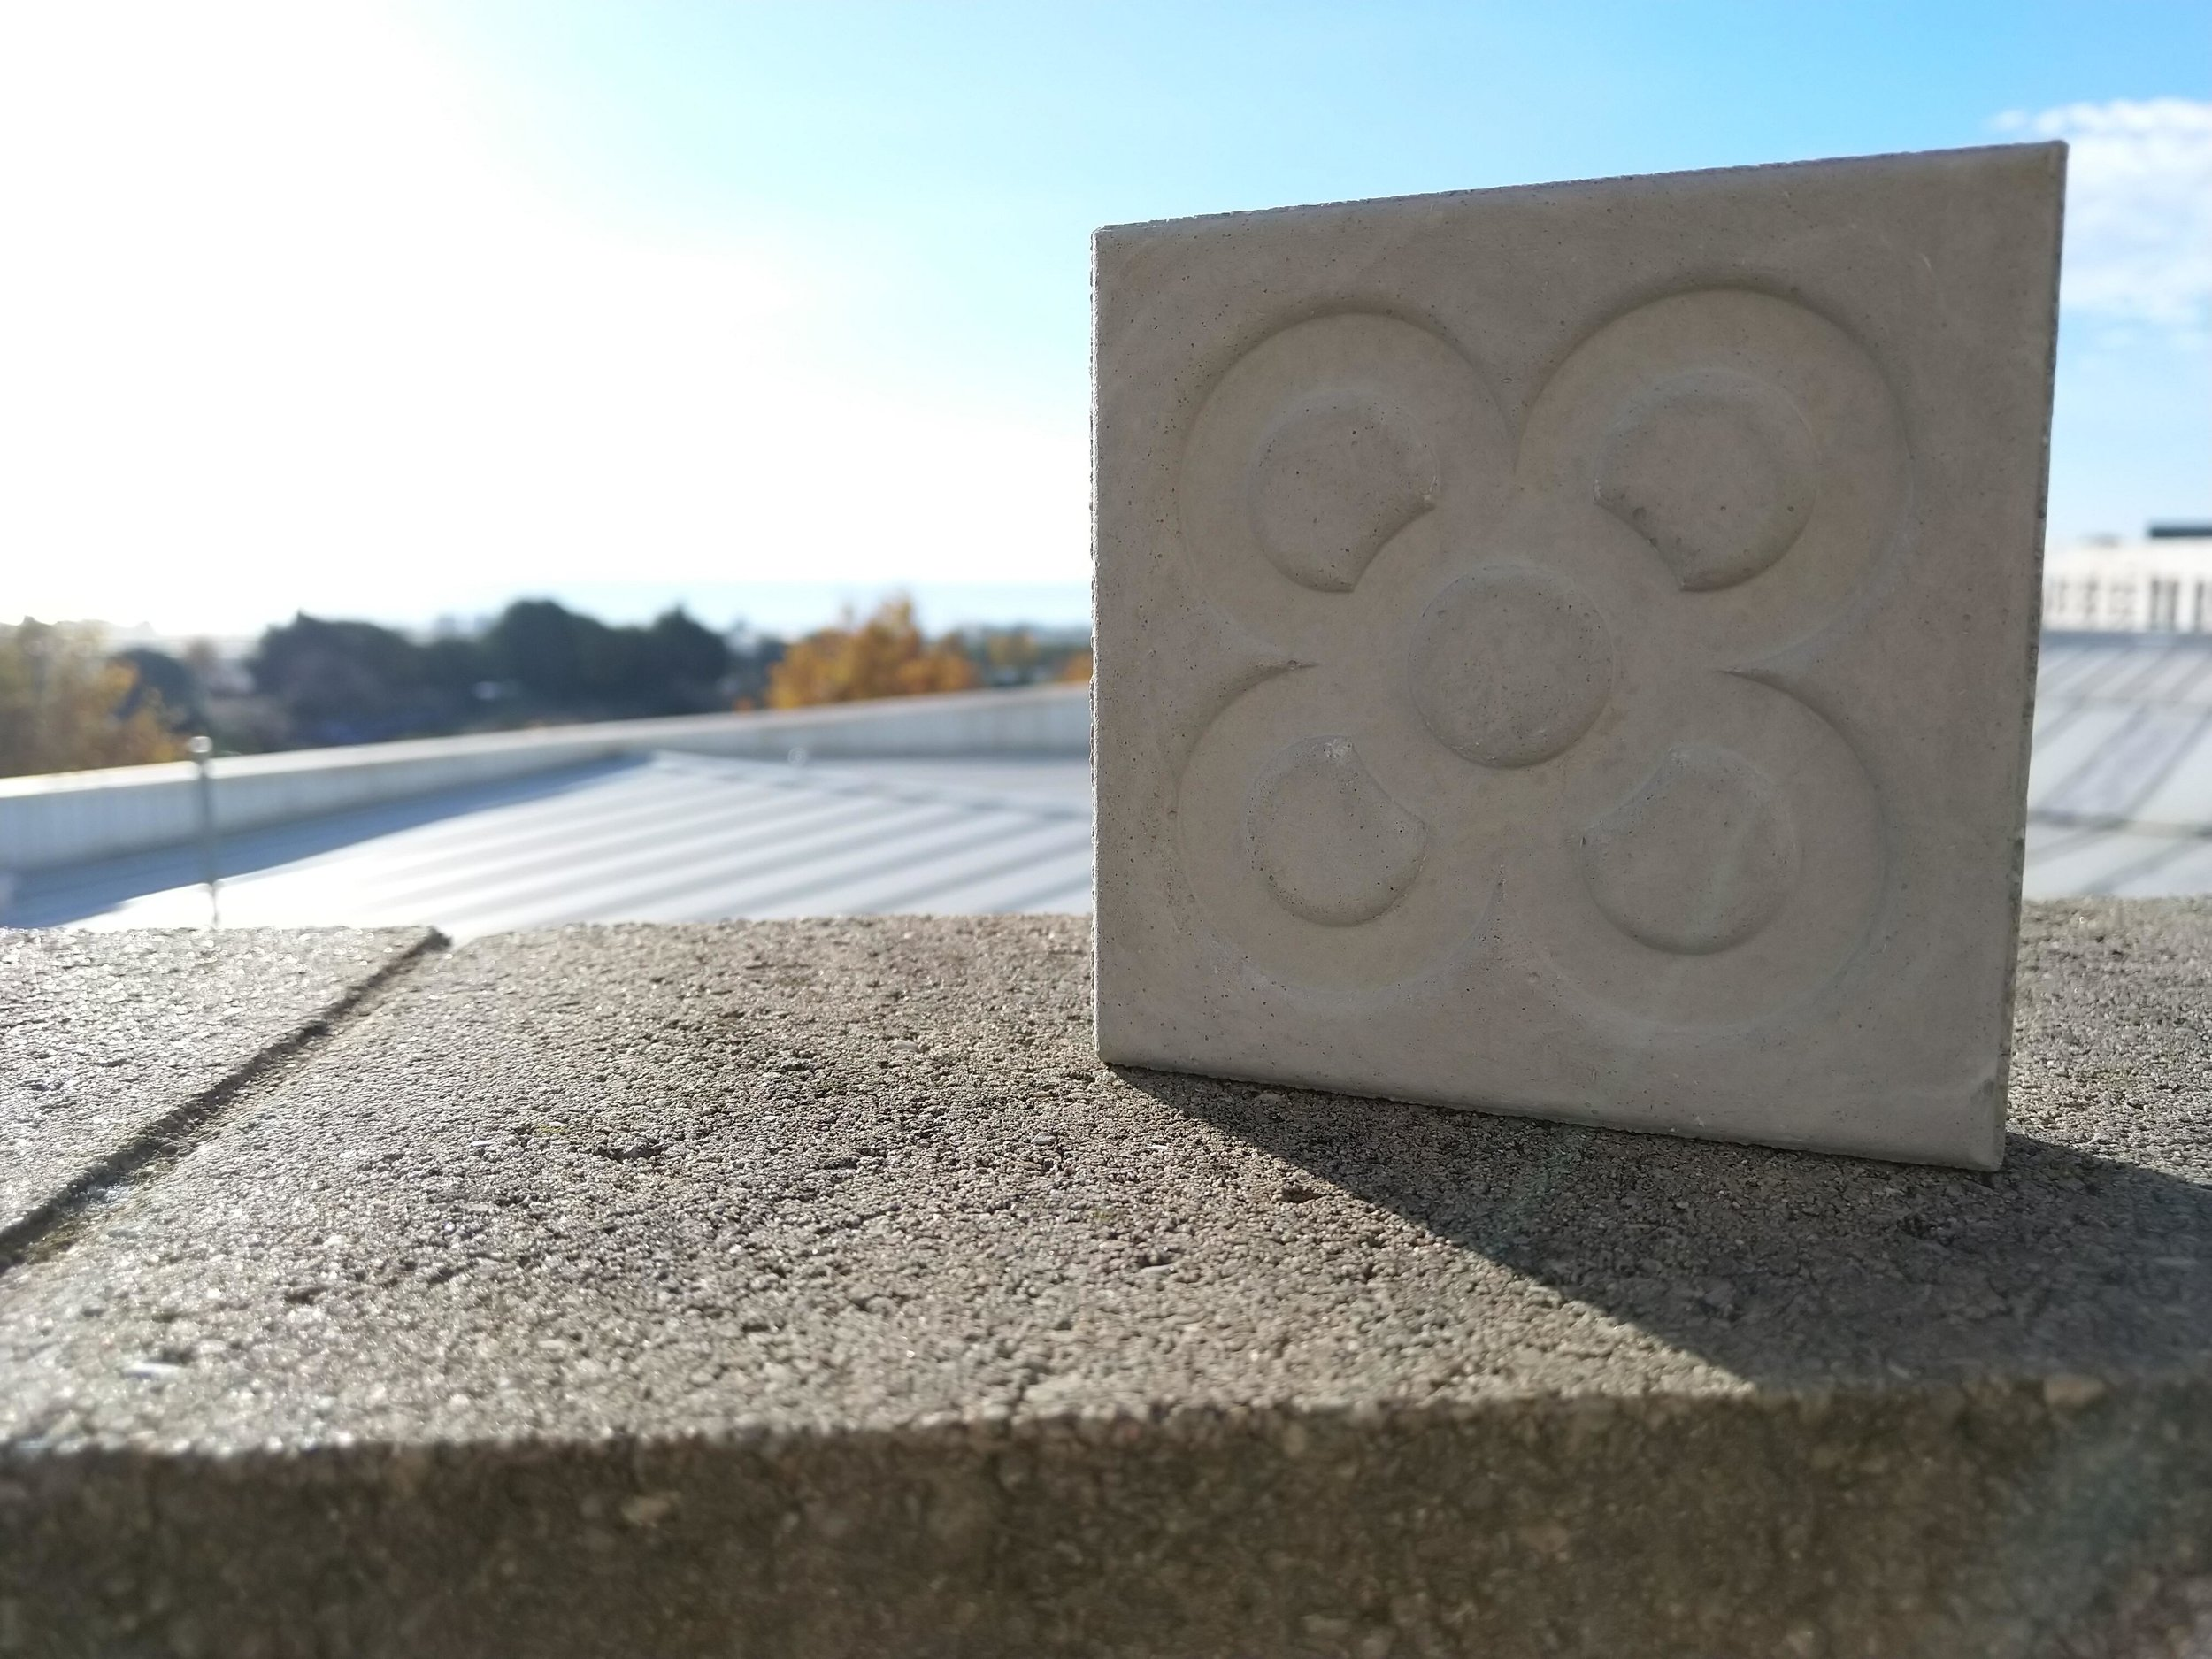 3D Printing Waste Becomes Sustainable Concrete